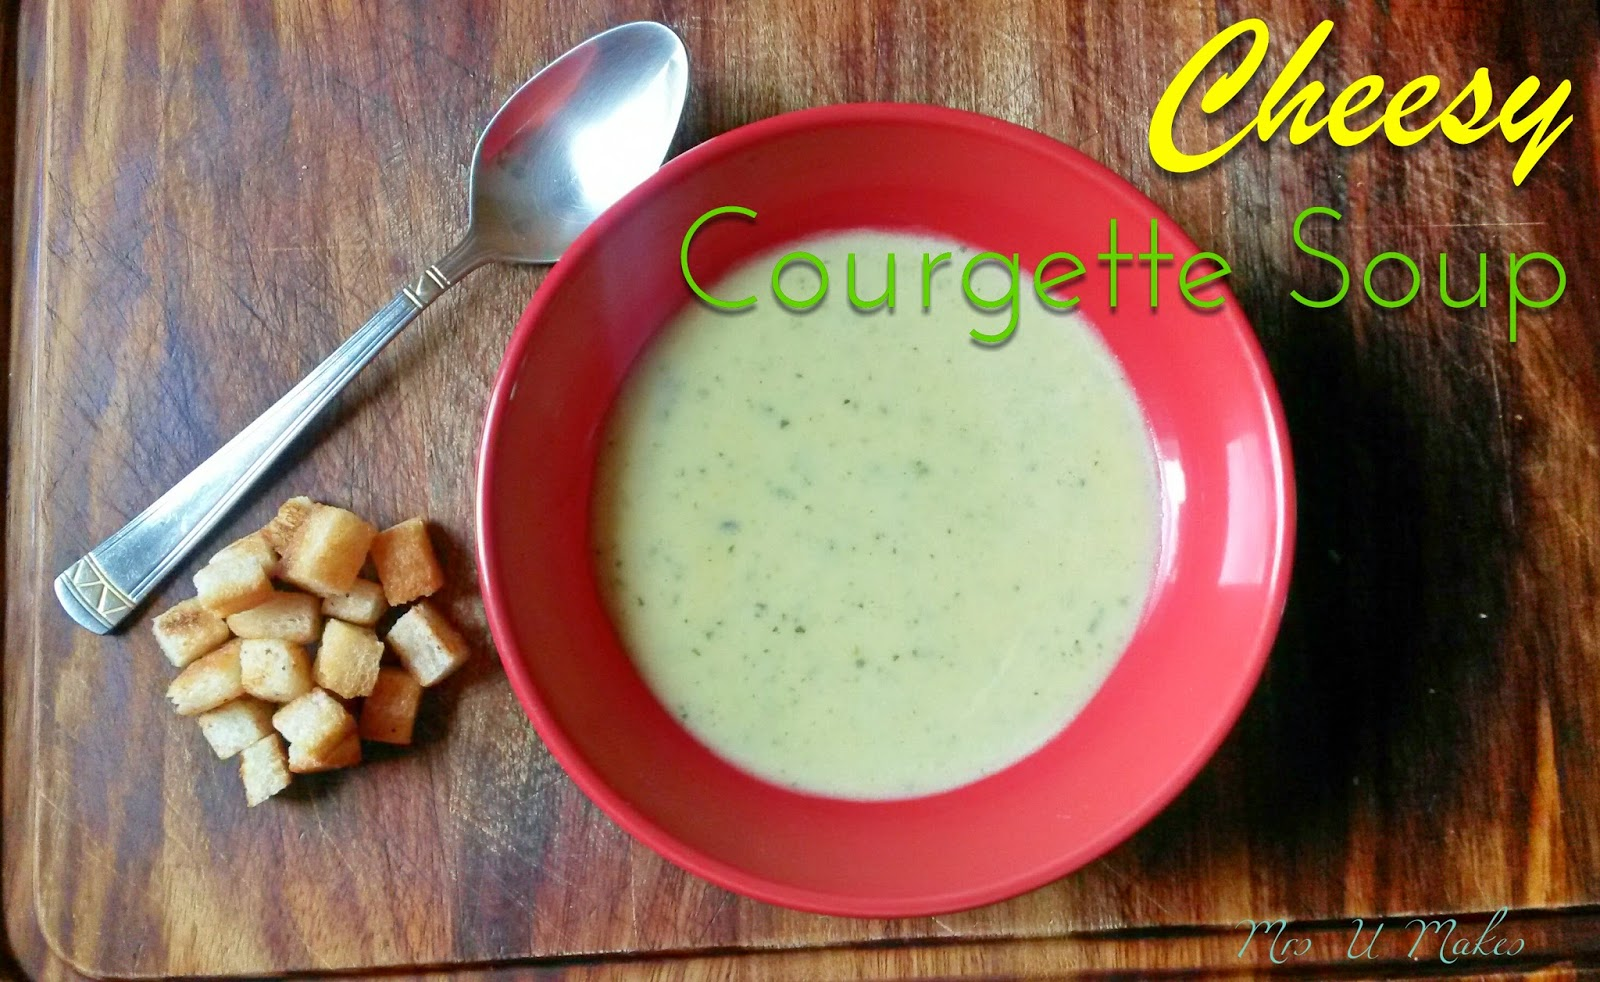 Cheesy Courgette Soup by Mrs U Makes